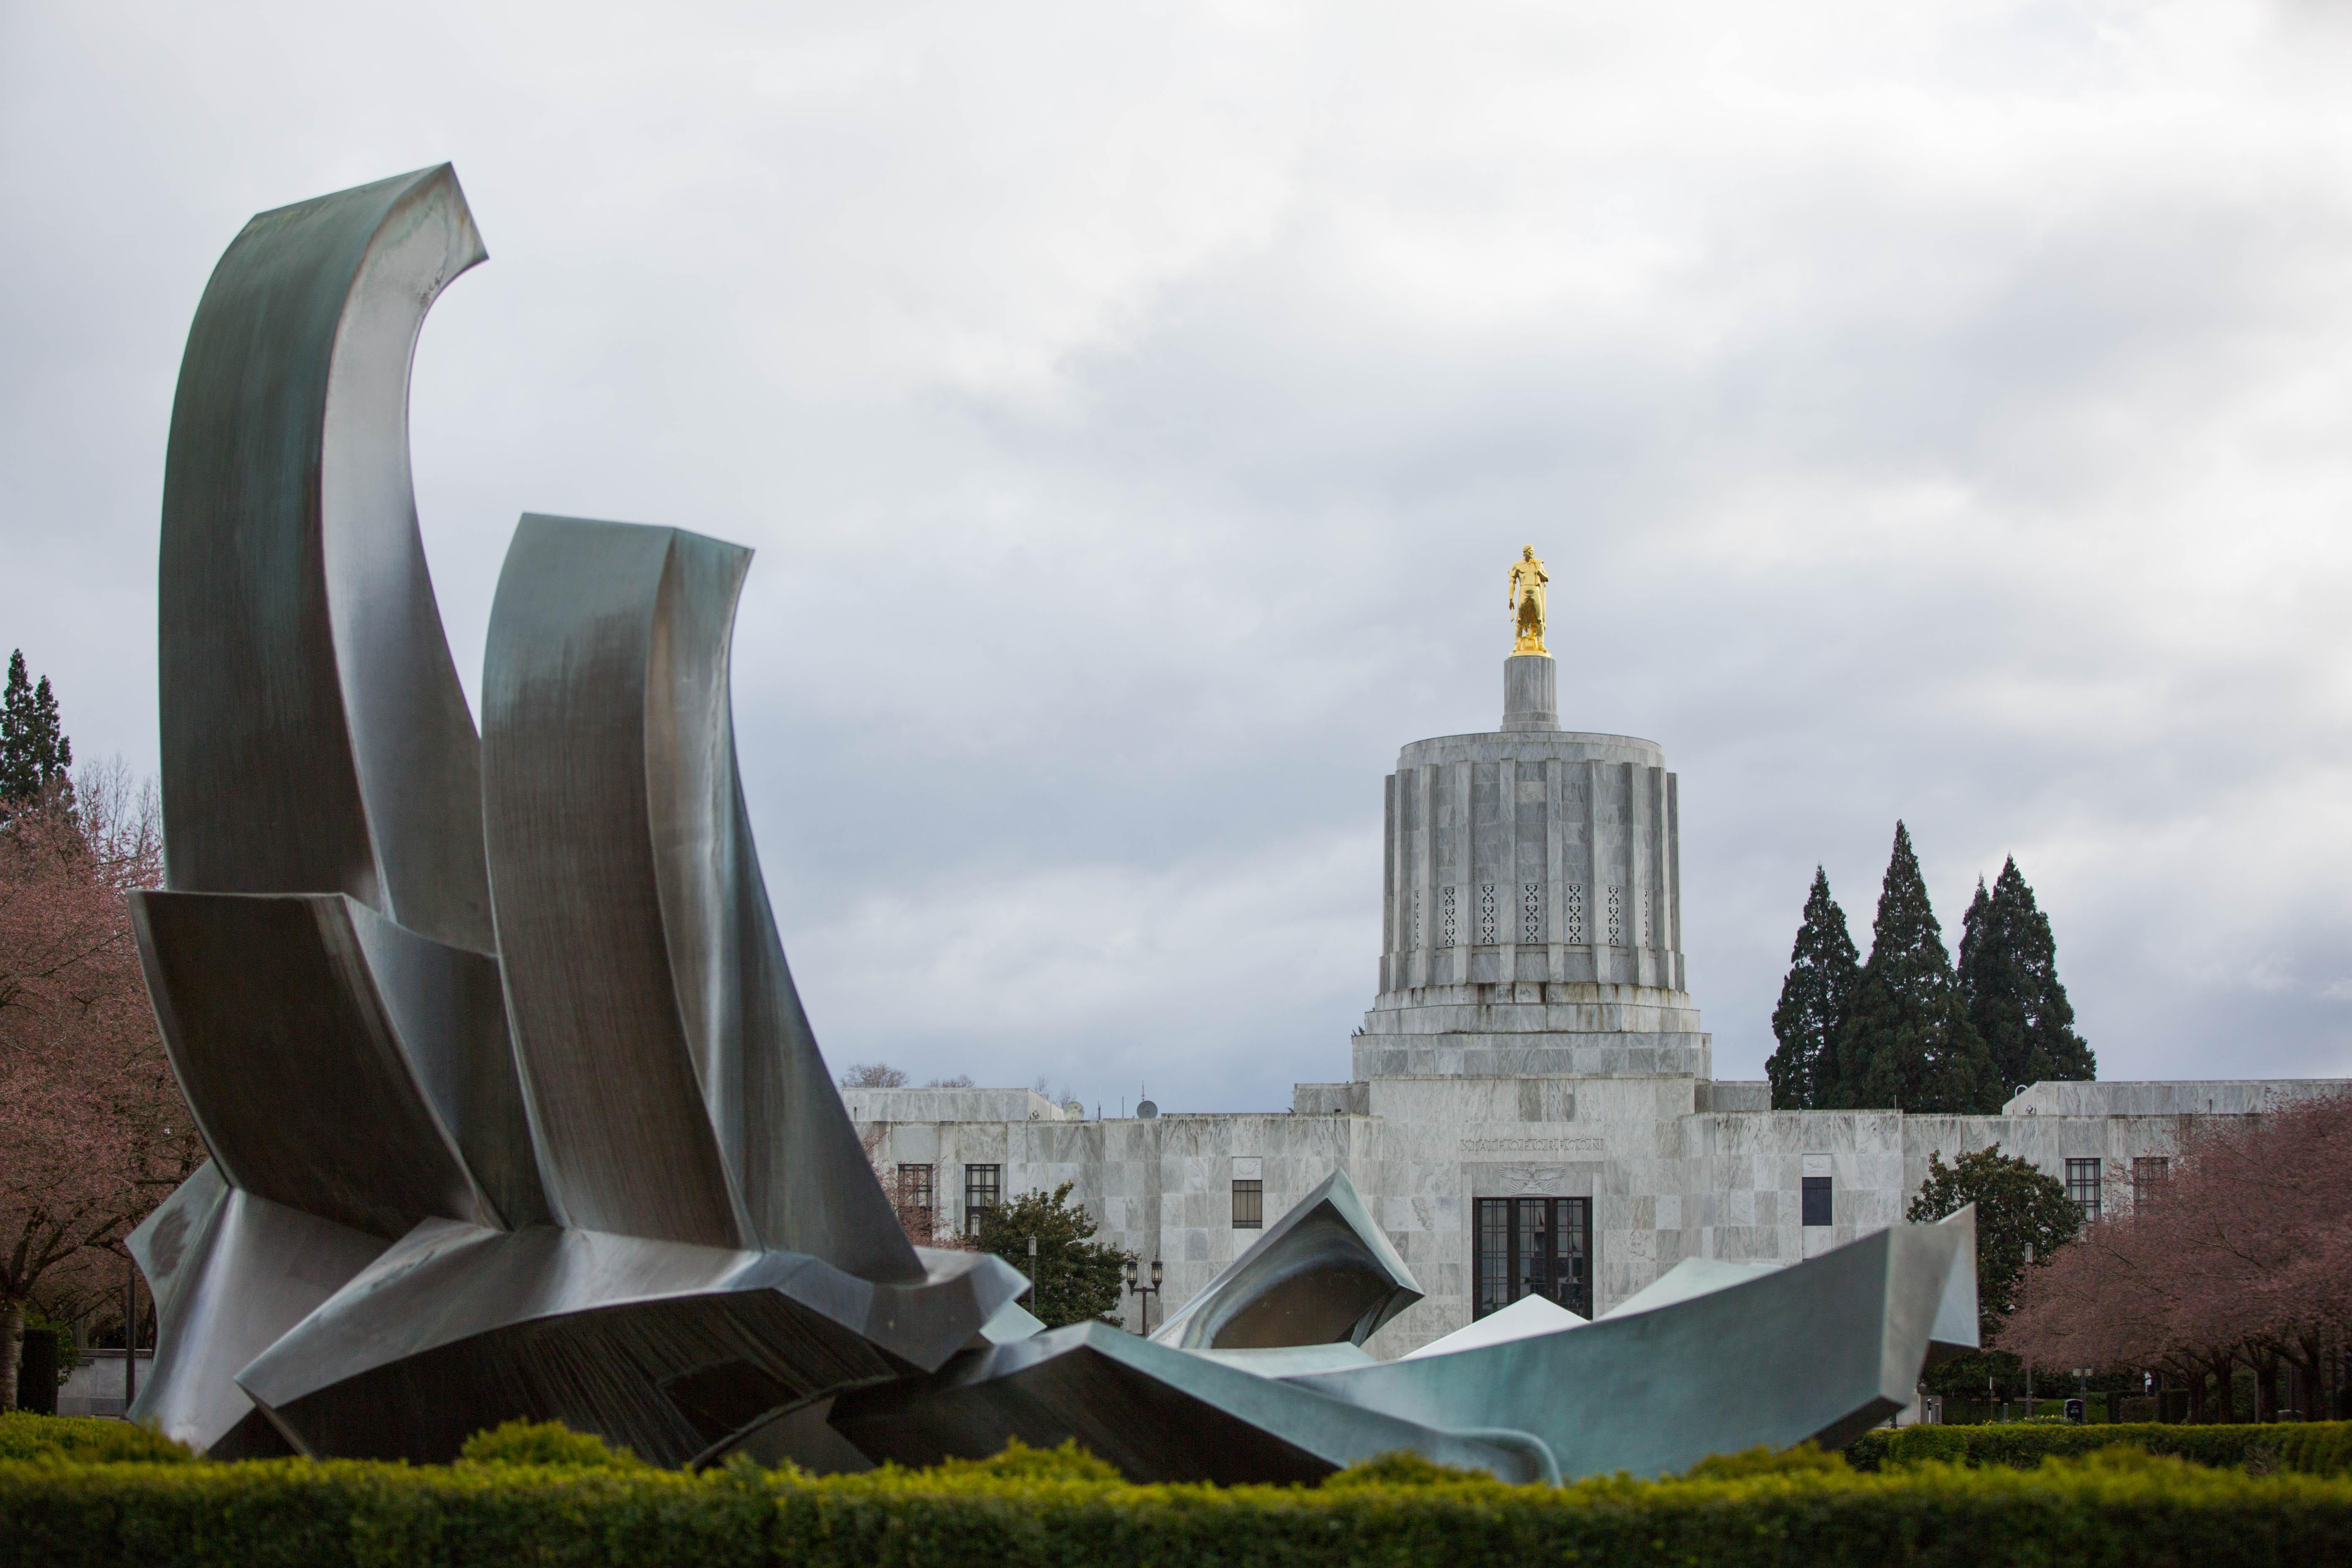 The Oregon Capitol in Salem, Oregon, Saturday, March 18, 2017. A new complaint by Oregon Labor Commissioner Brad Avakian alleges Oregon legislative leaders fostered a hostile workplace by not taking sexual harassment claims seriously enough.